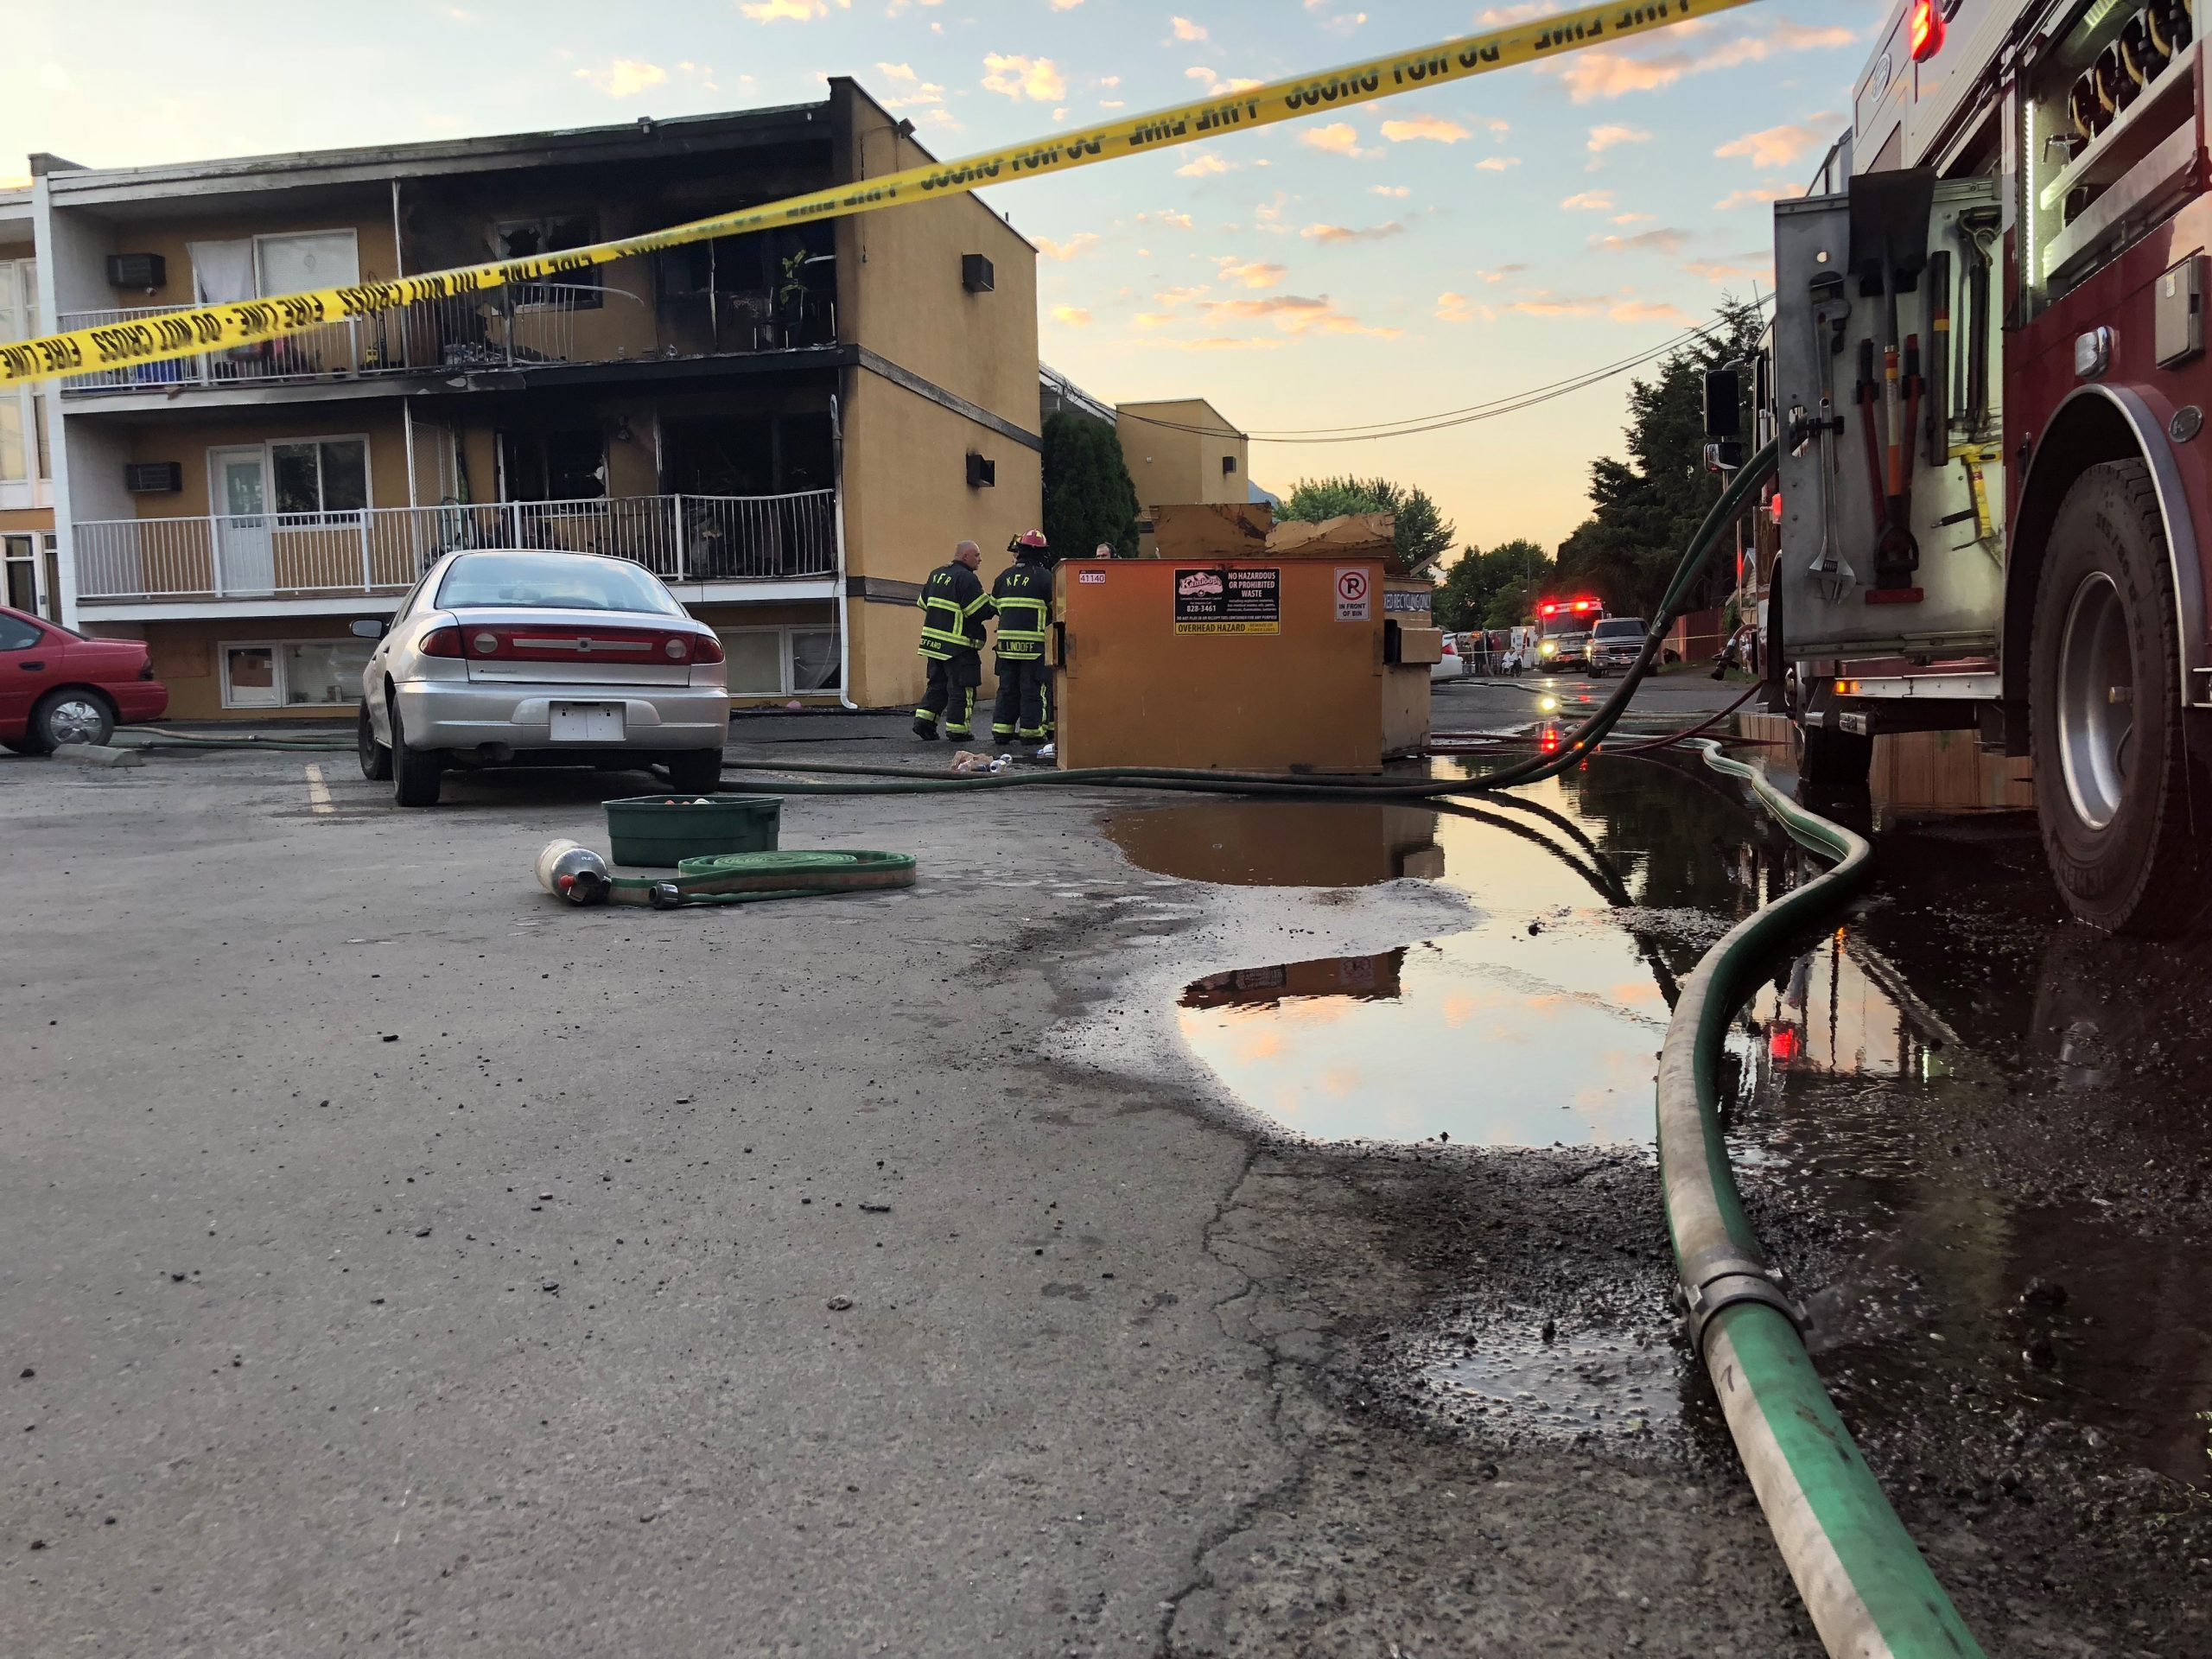 Early morning fire destroys at least two apartments, damages others